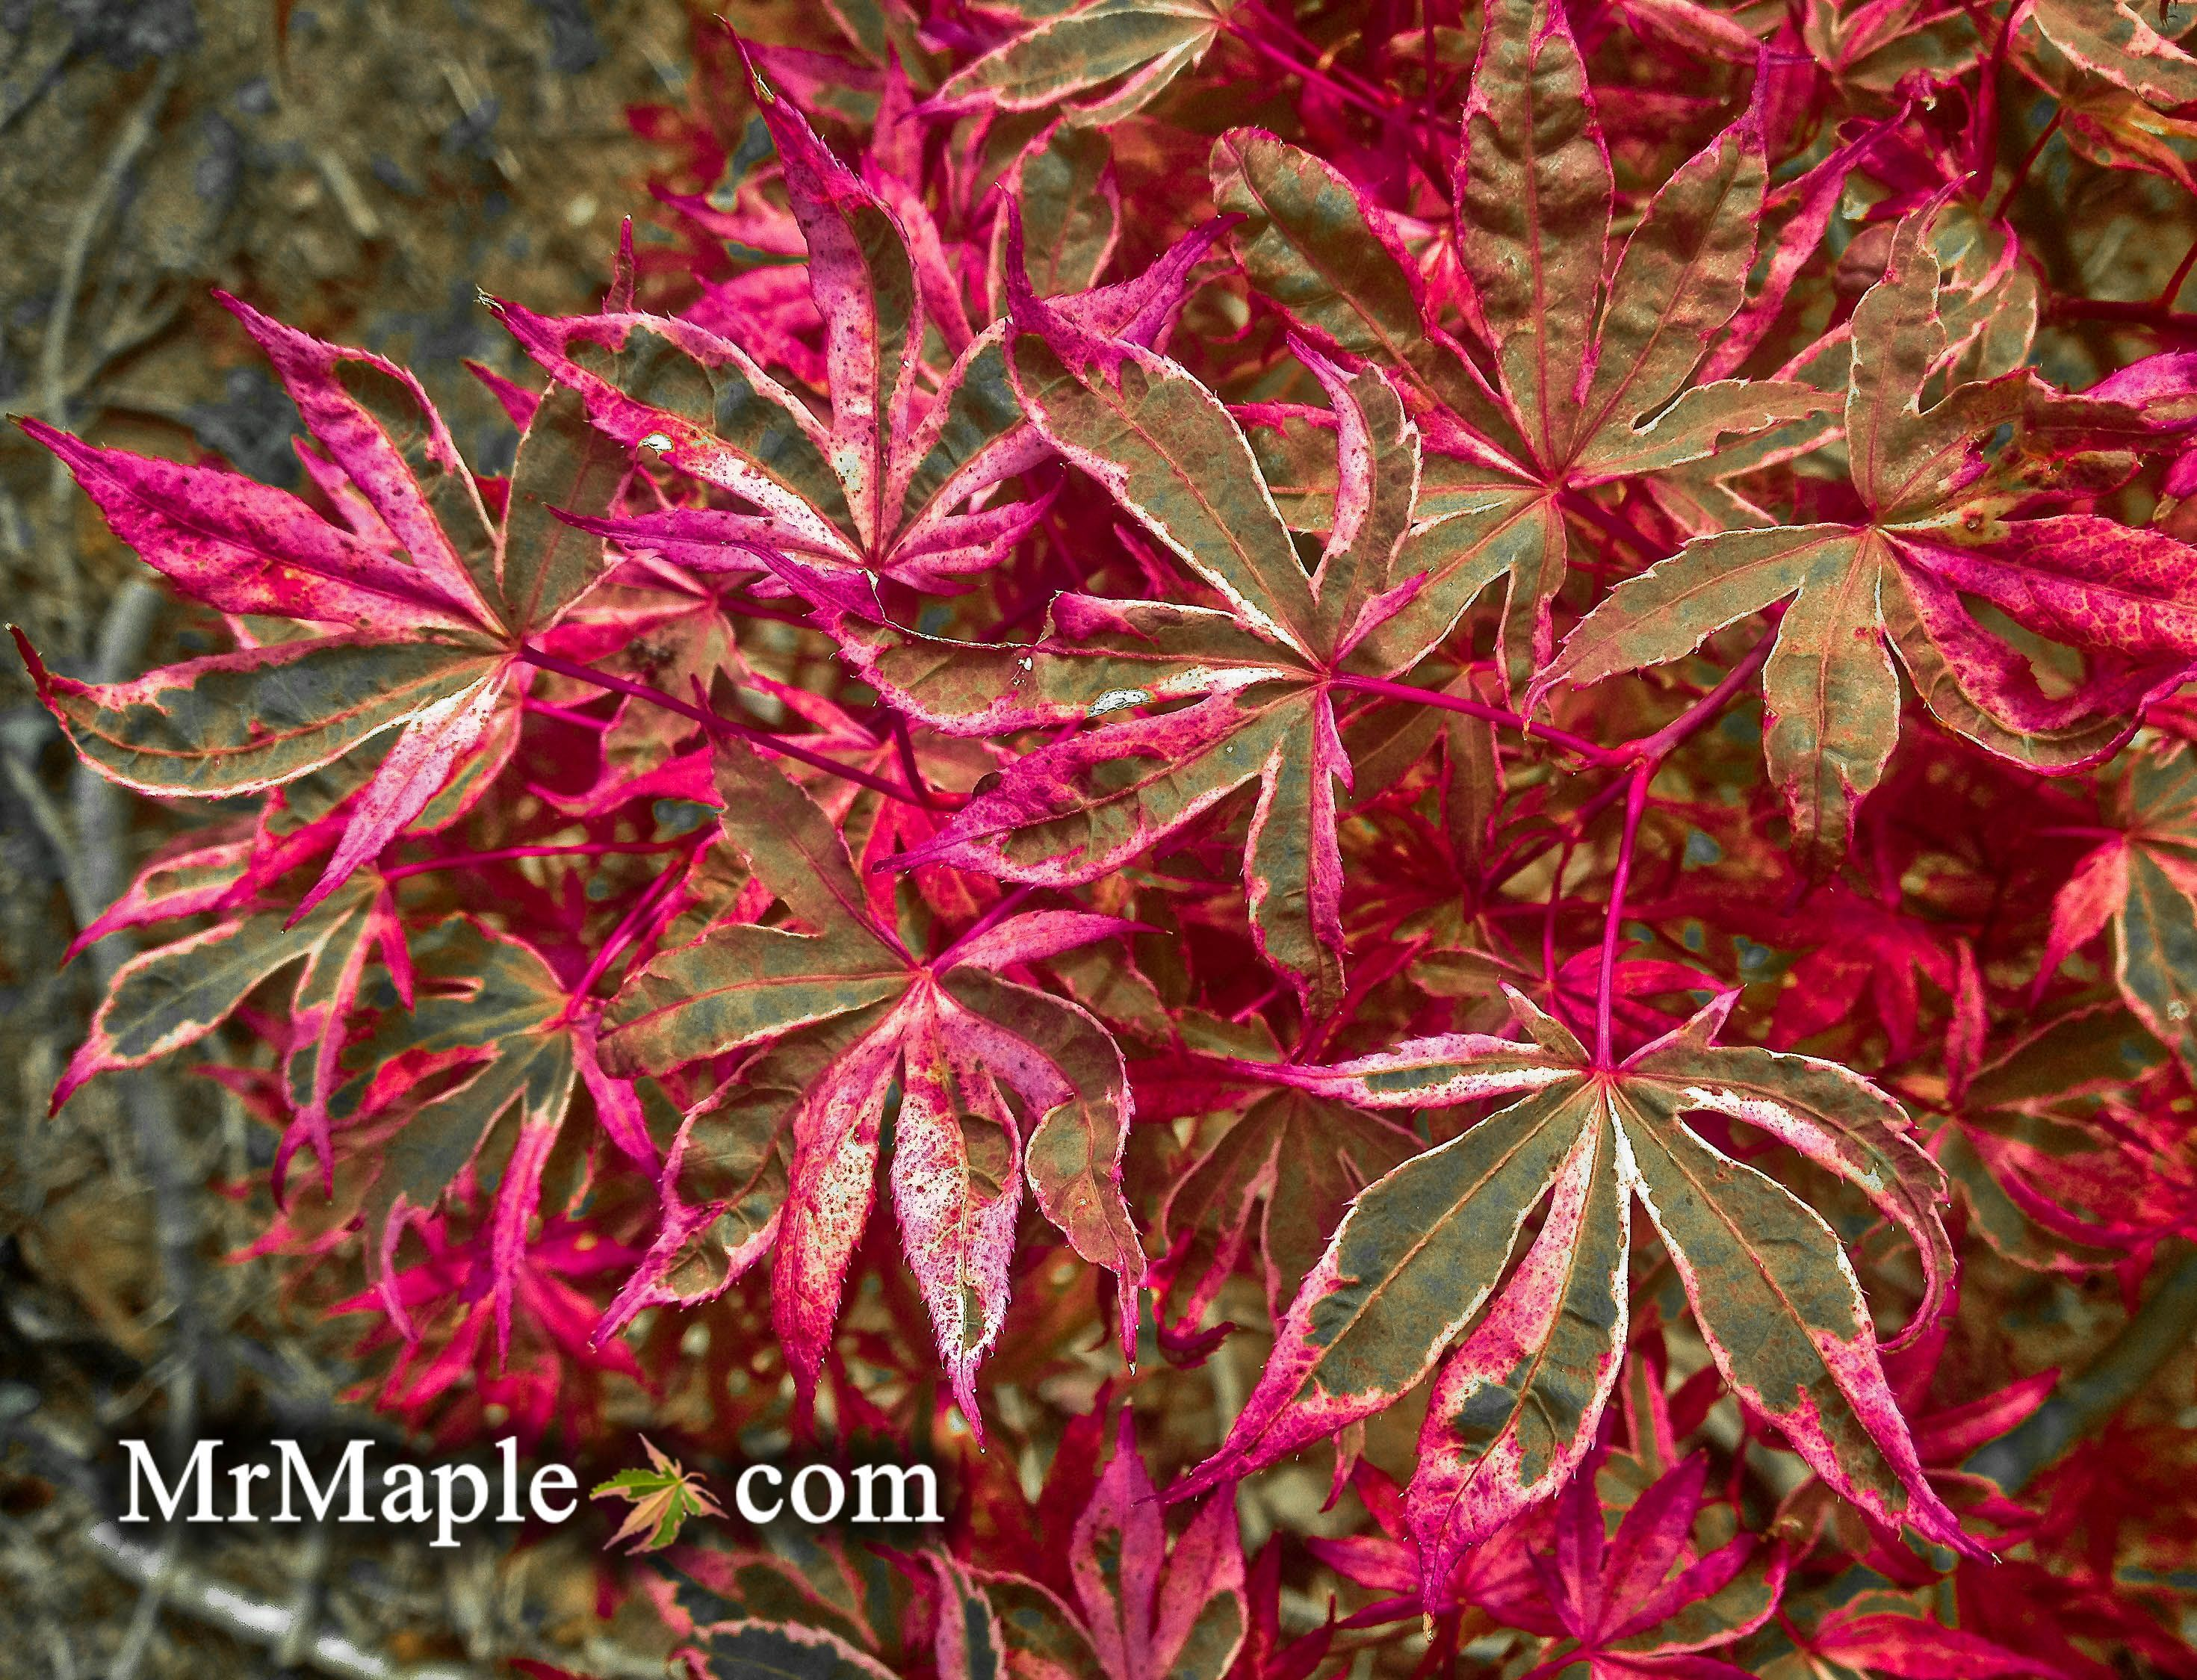 How to care for a fern leaf japanese maple - Acer Palmatum Geisha Gone Wild Is An Excellent Red And Pink Variegated Japanese Maple Buy